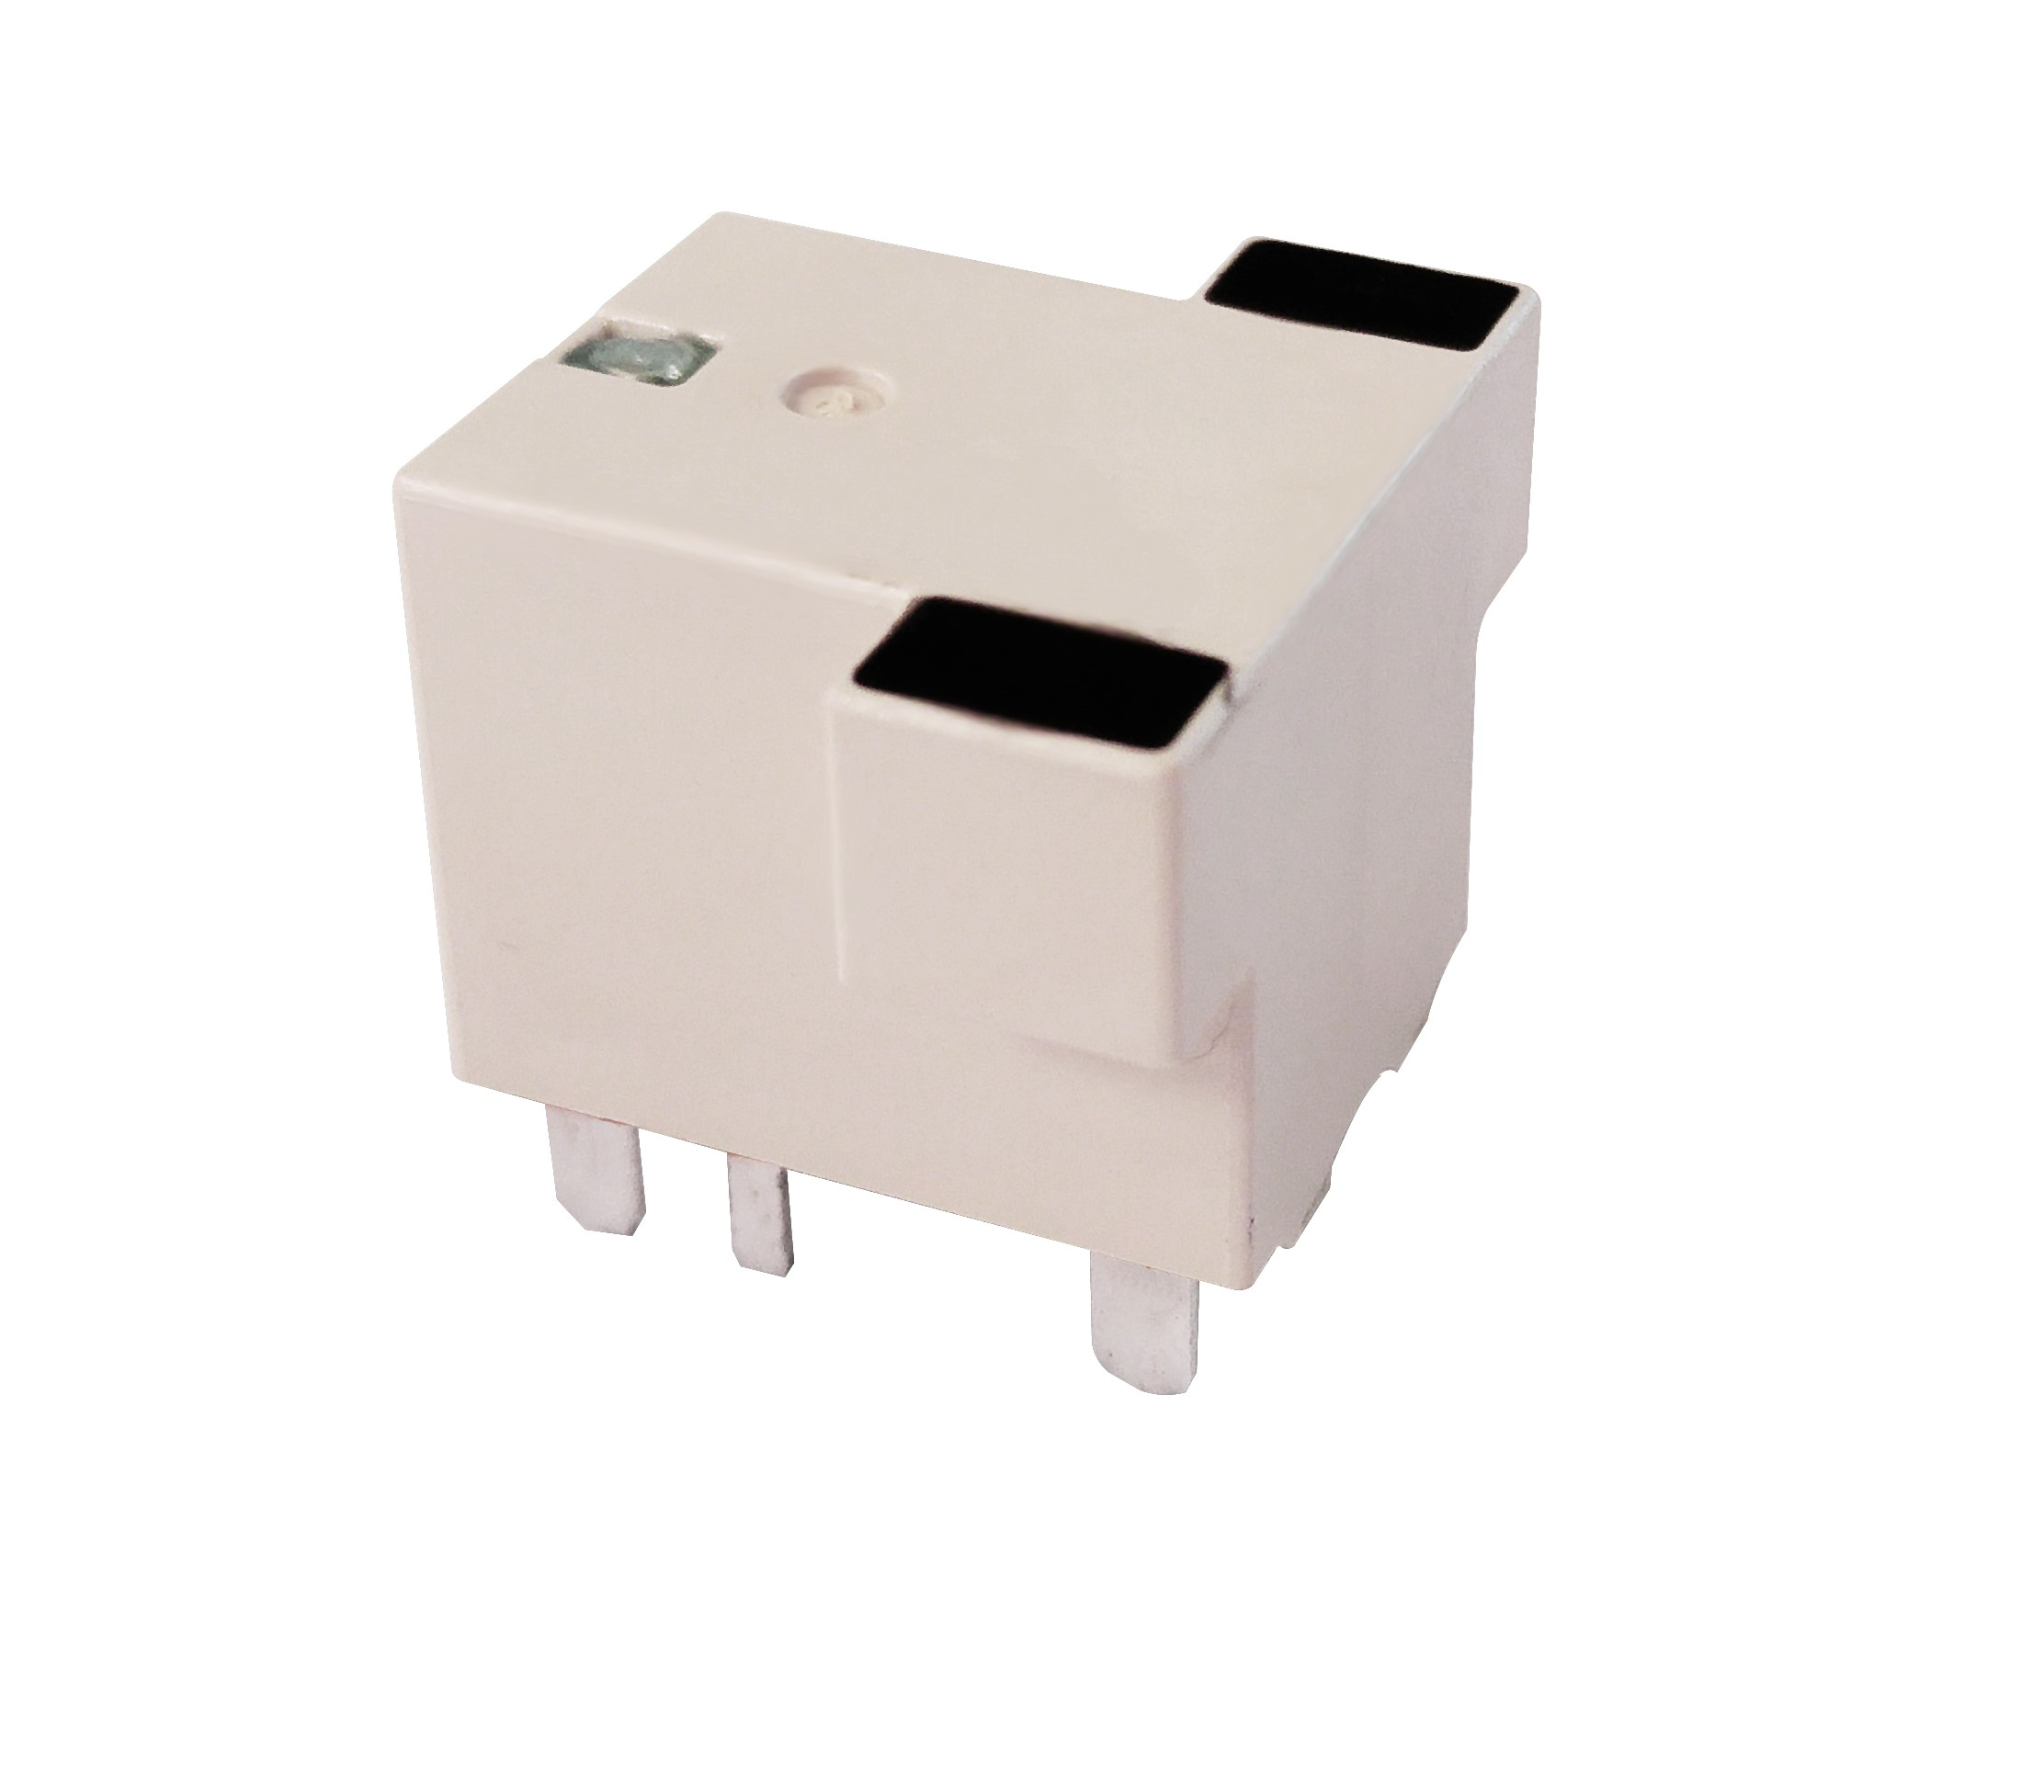 Fujitsu High Voltage AC And DC Relays Fujitsu UK - Switching voltage in relay